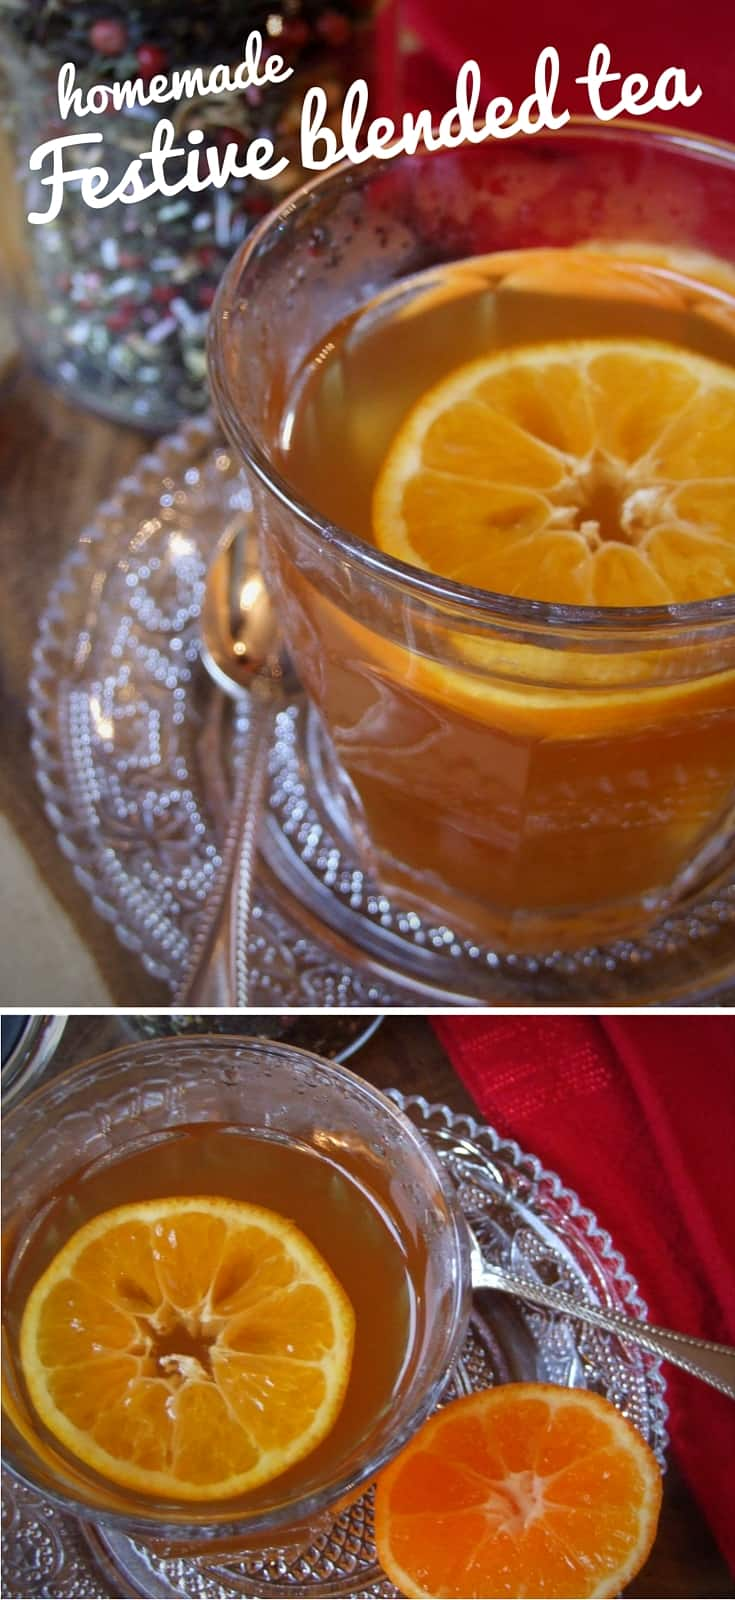 This delicious tea blend, with its spicy, minty, sweet rich flavour, is a great homemade gift. Serve with milk or a slice of clementine for a festive treat.